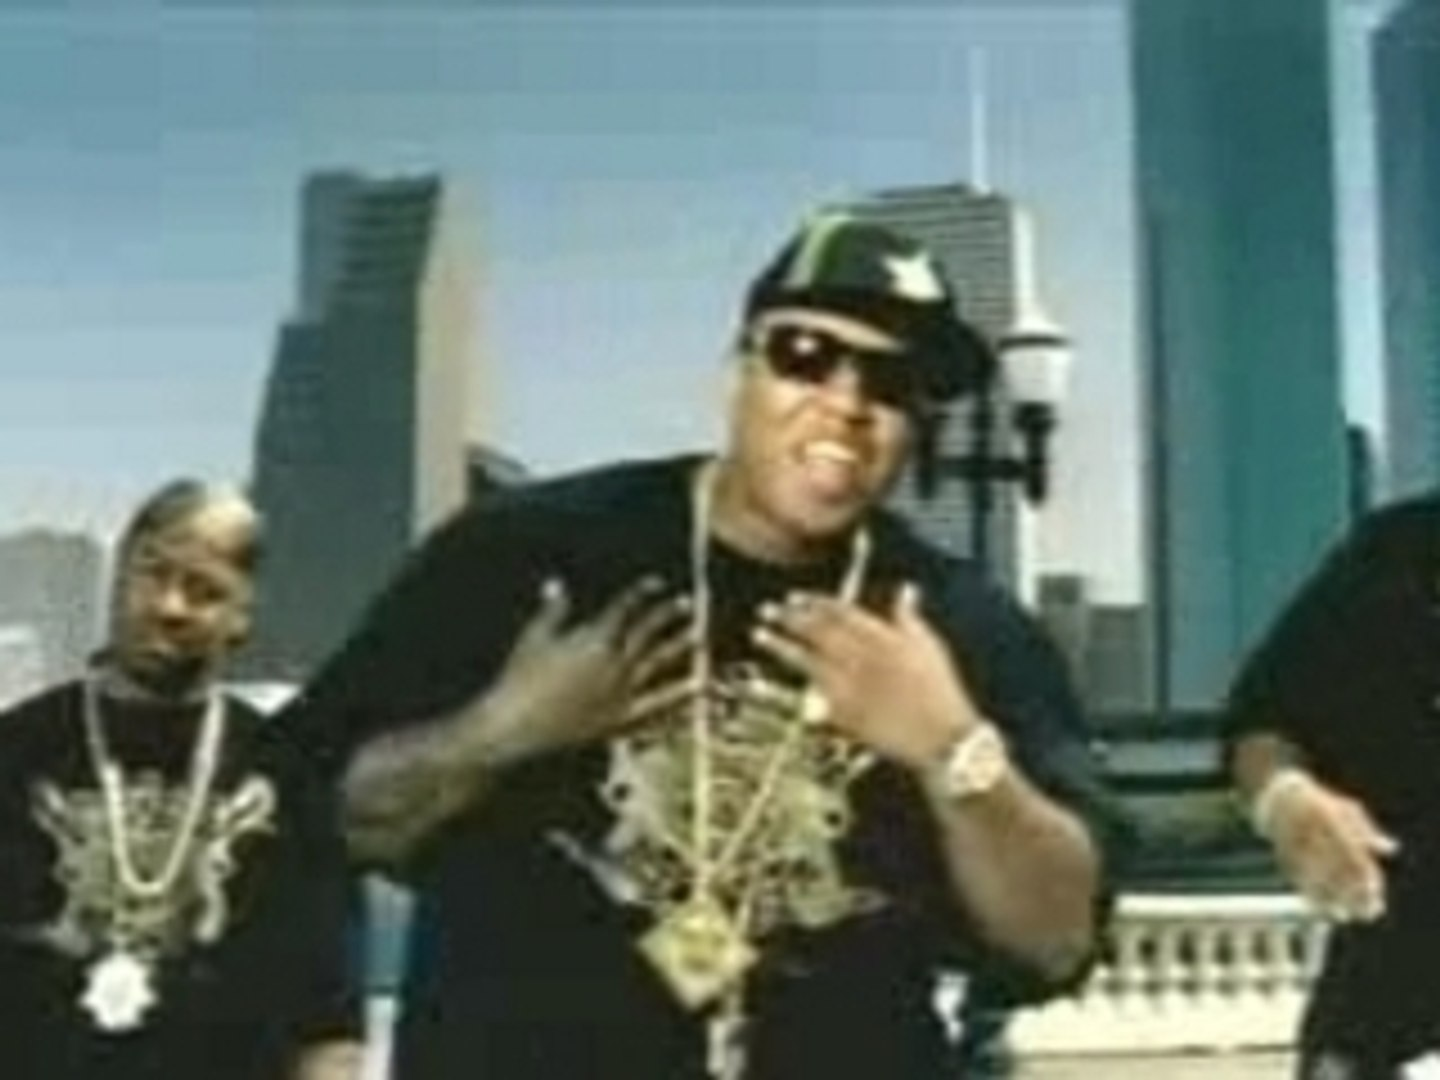 Boss Hogg Outlawz Feat Slim Thug - Recognize A Playa